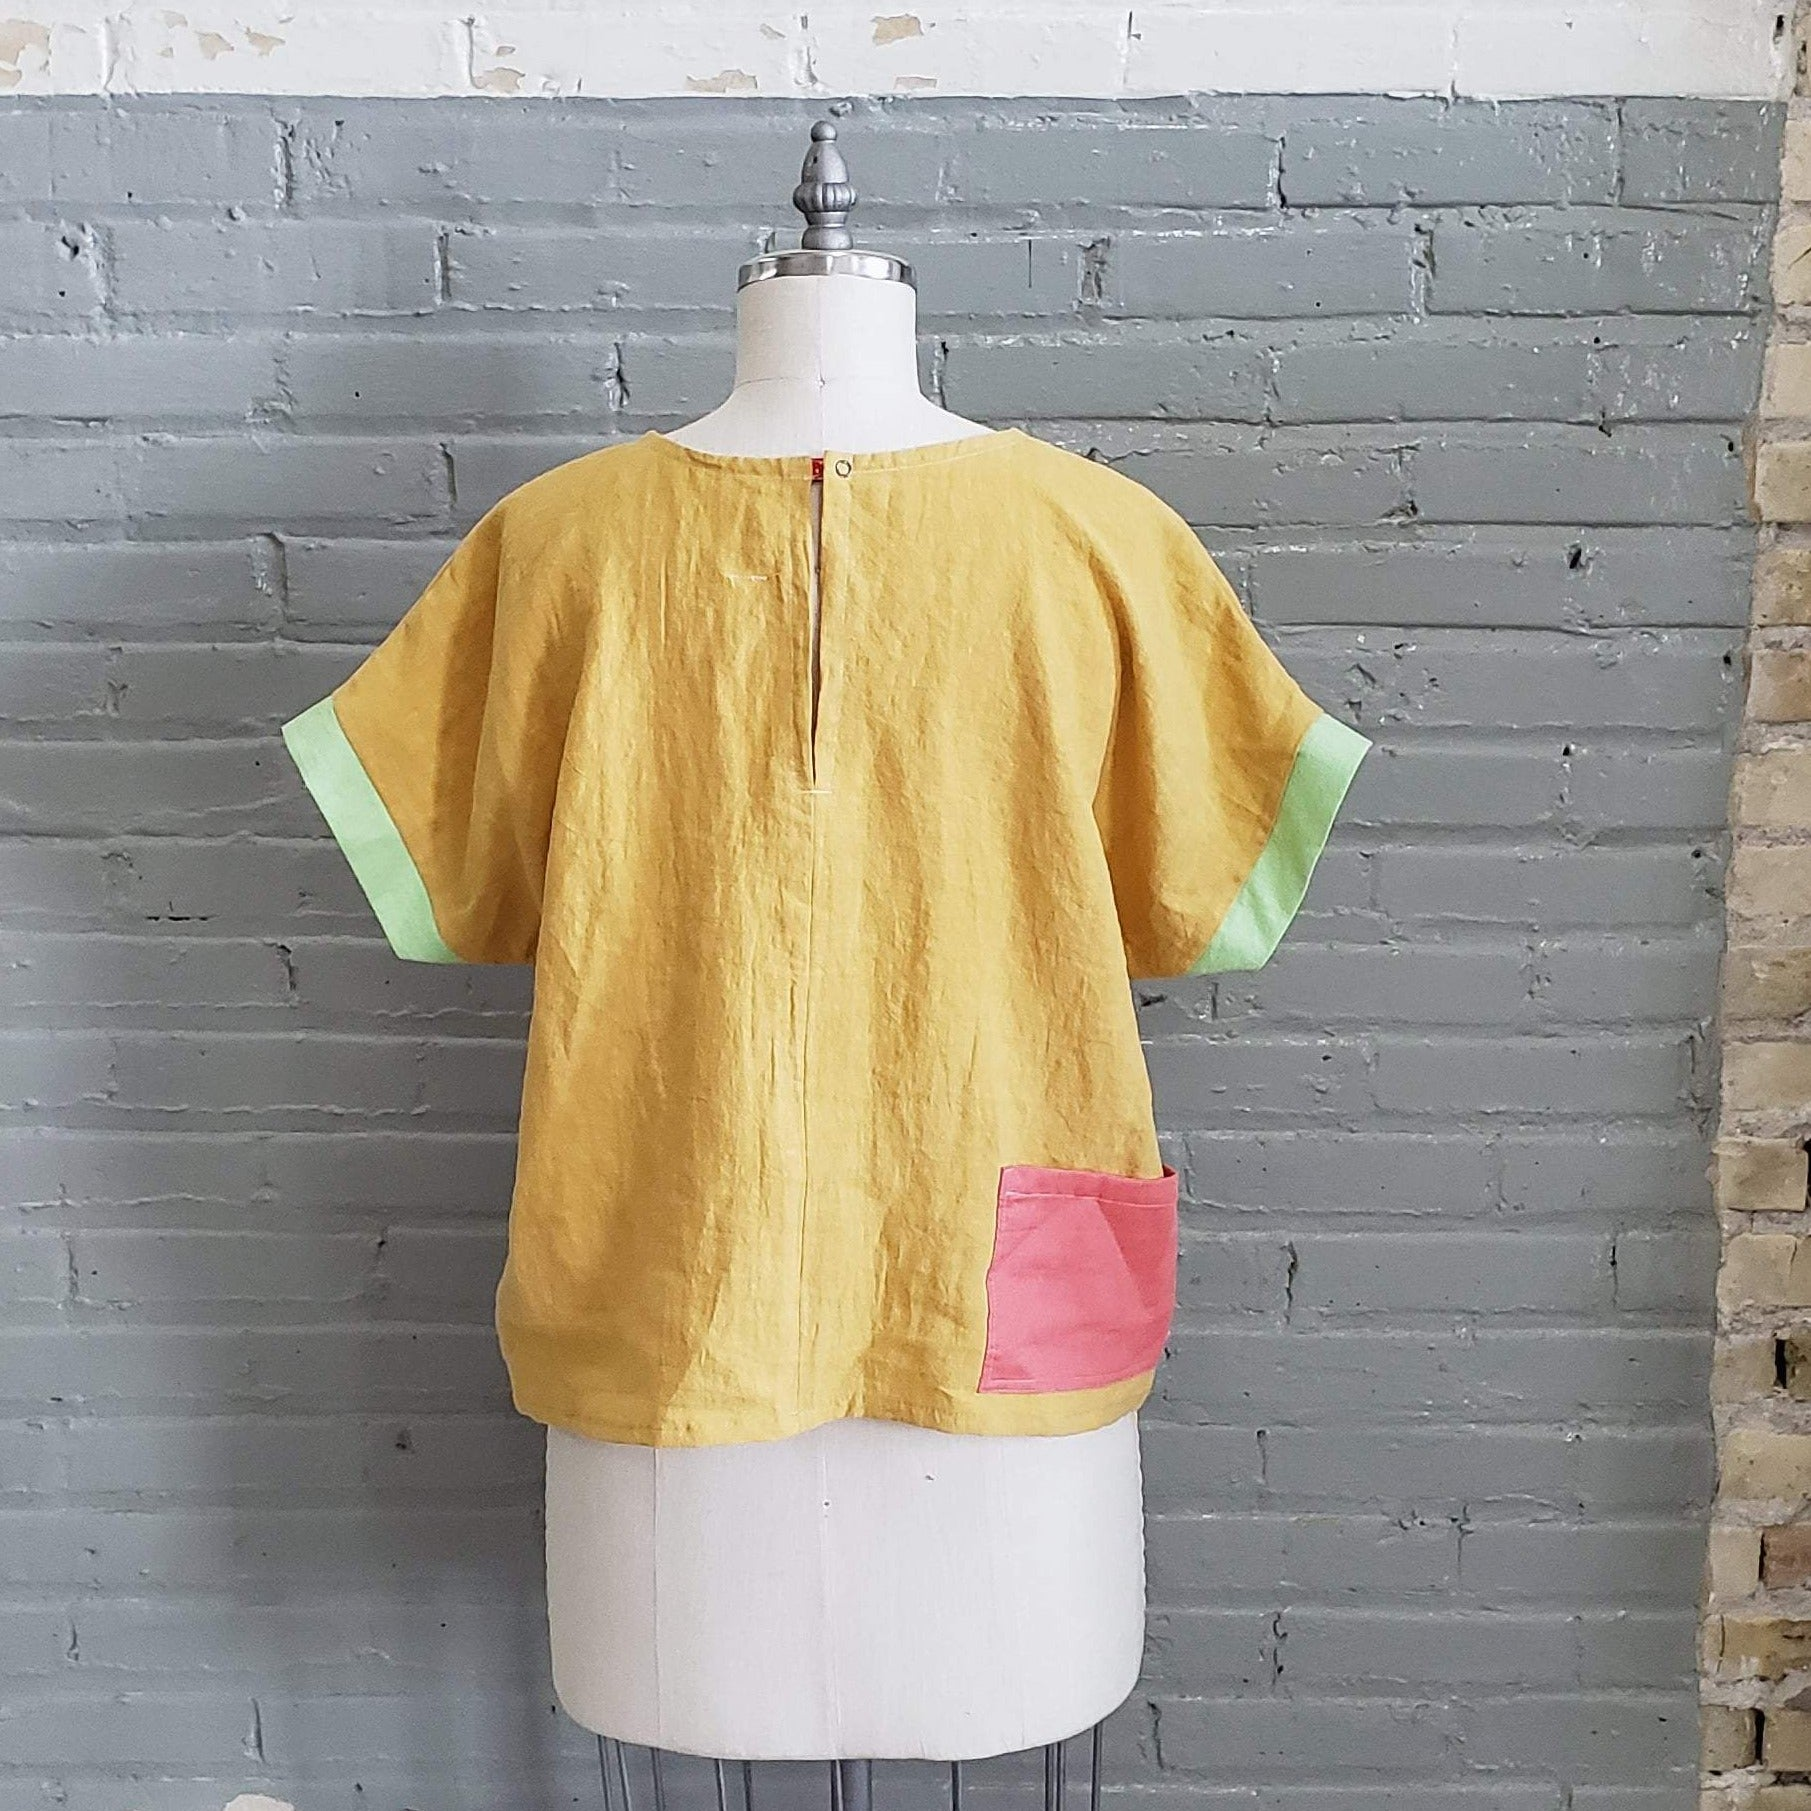 yellow linen tee shirt with pink pocket displayed on a dress from as shown from the back